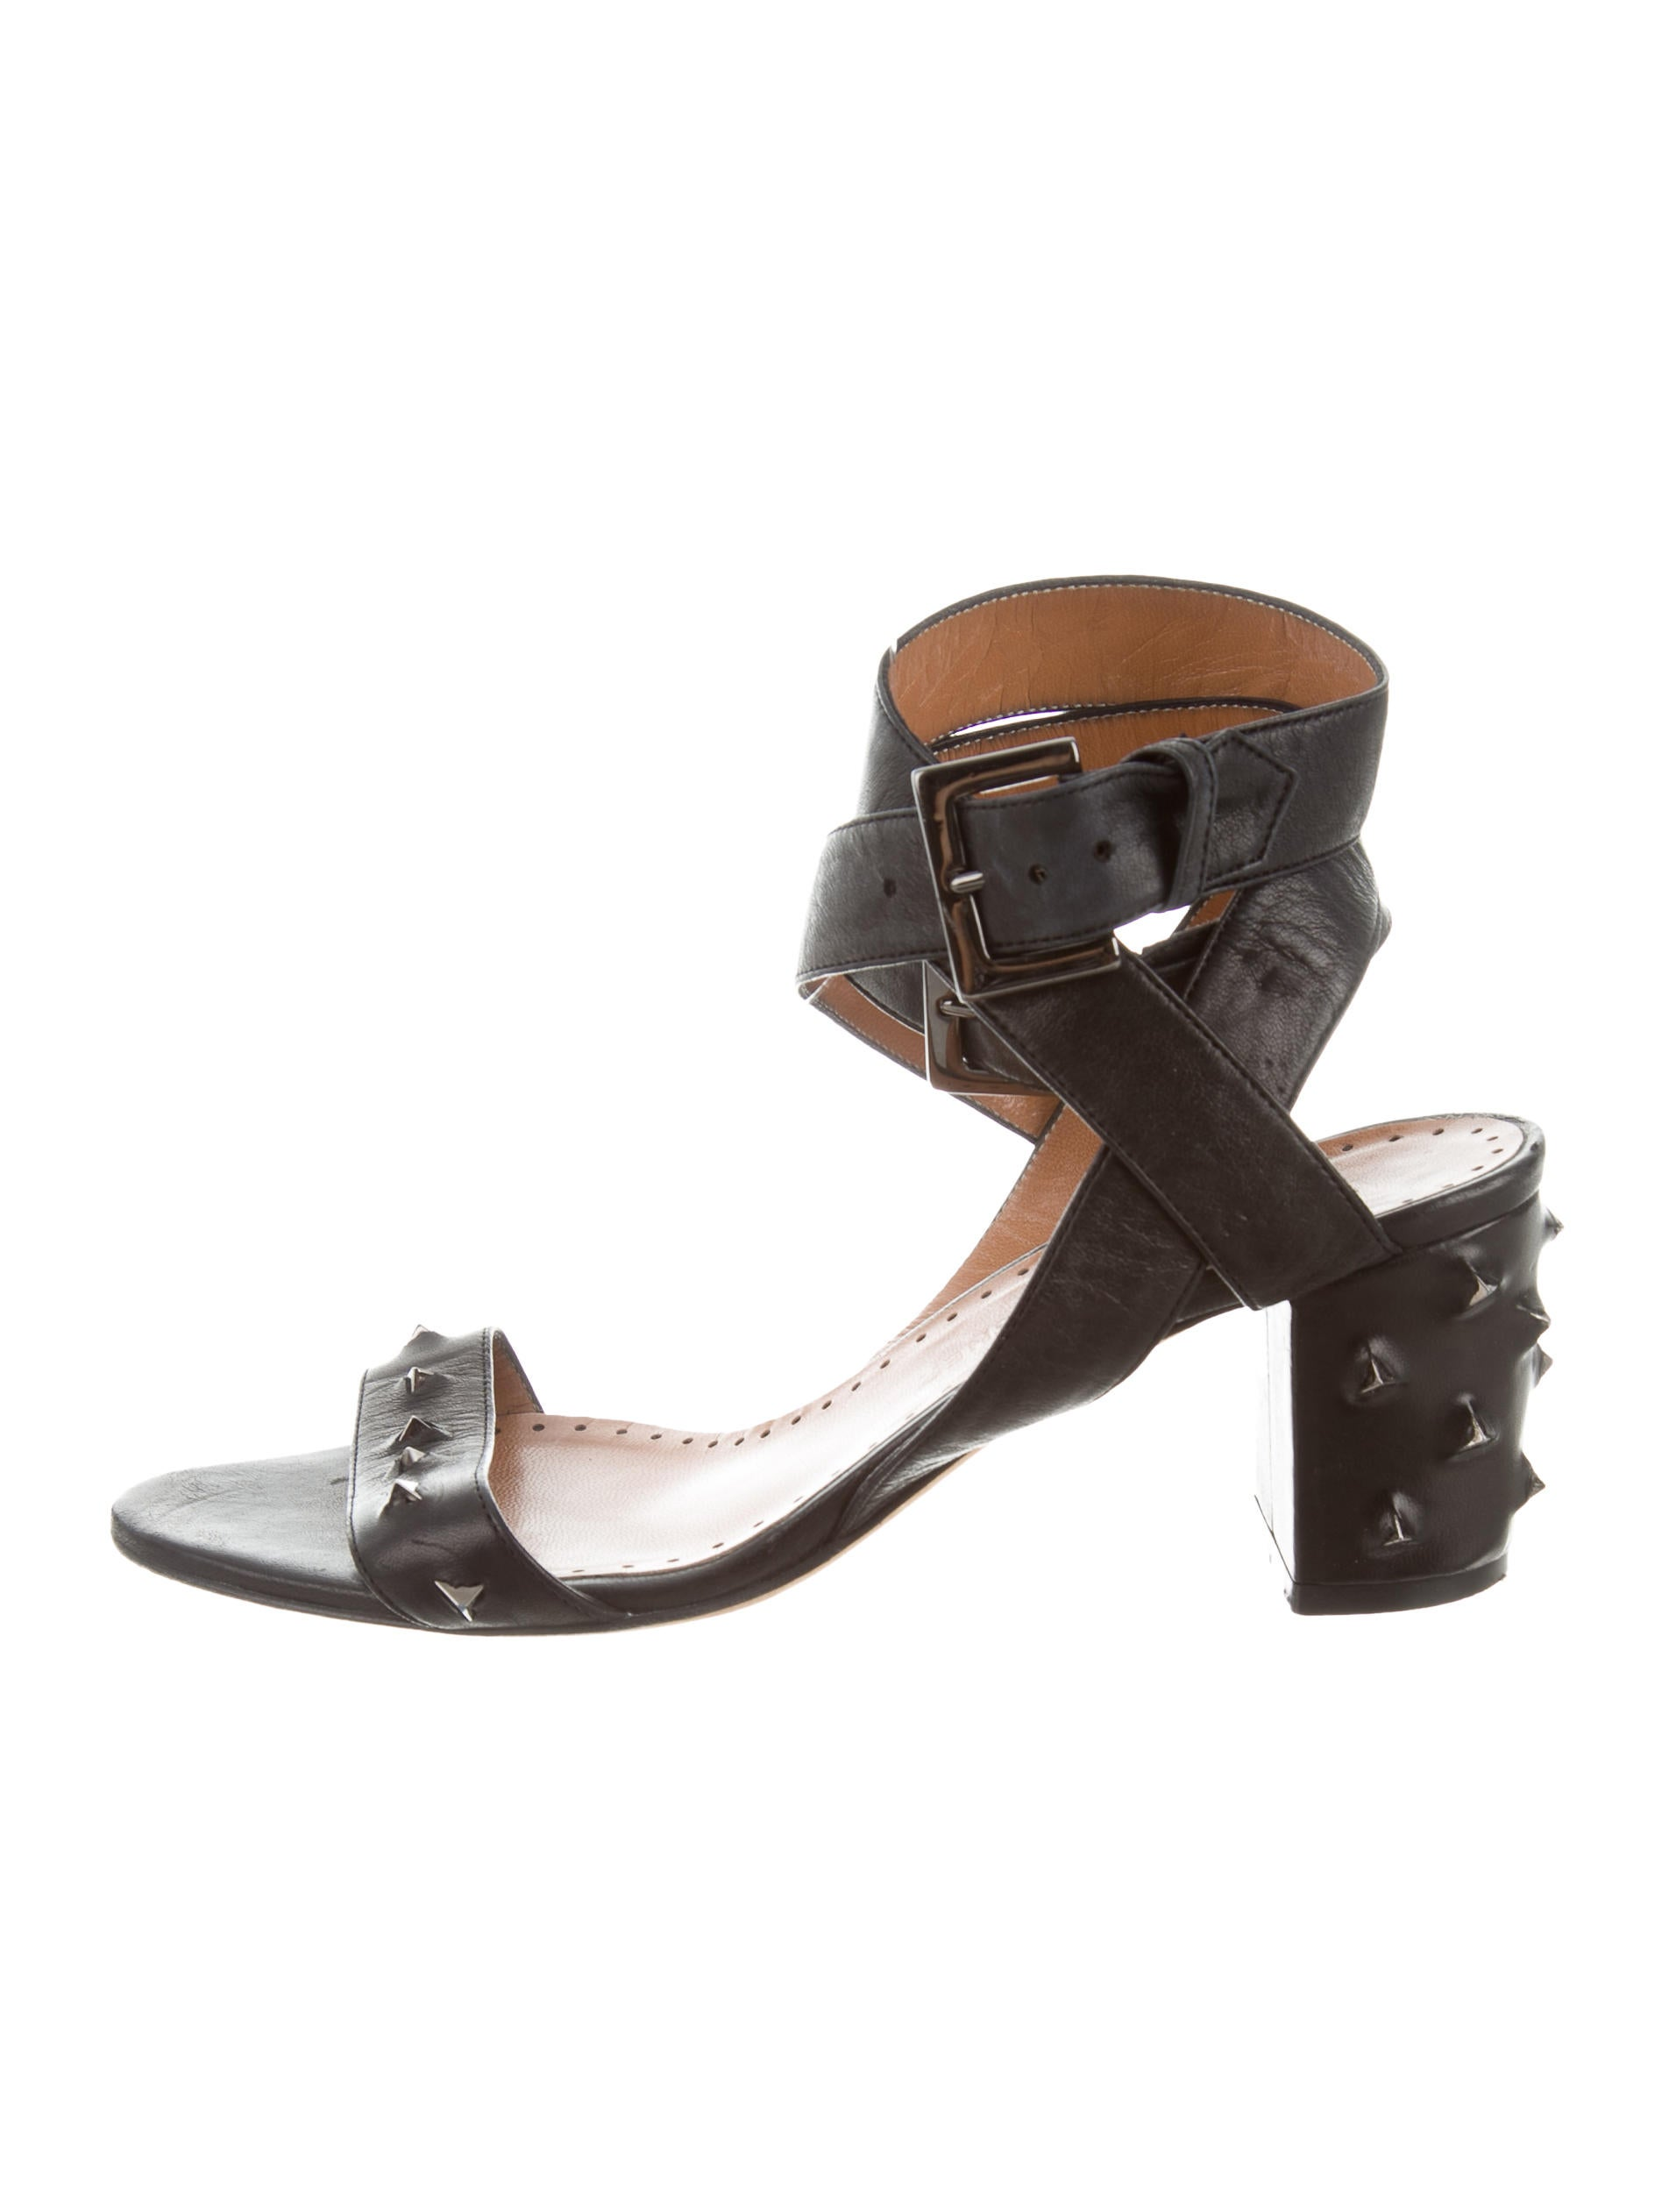 Alexa Wagner Snakeskin Multistrap Sandals tumblr cheap price free shipping cost cheap price wholesale price 3zNlAWn